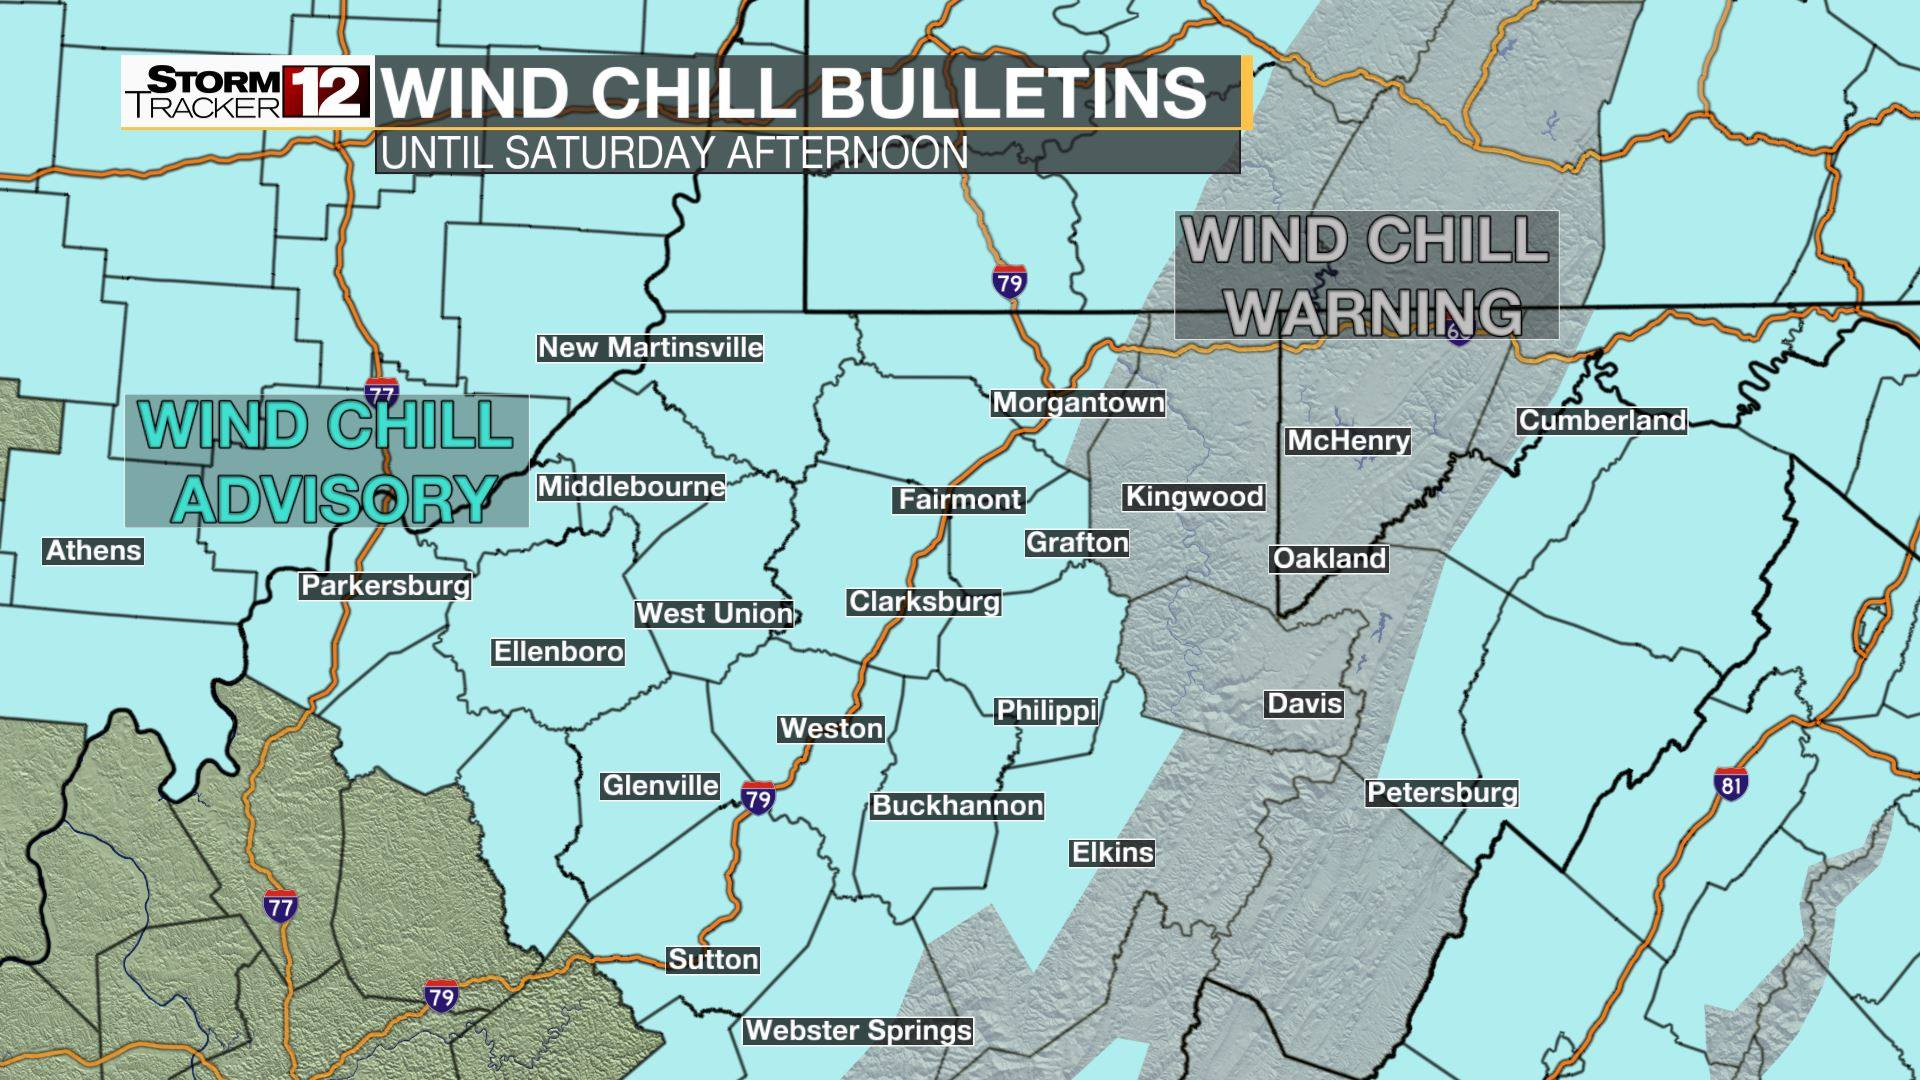 Wind Chill Bulletins are Issued by local NWS offices